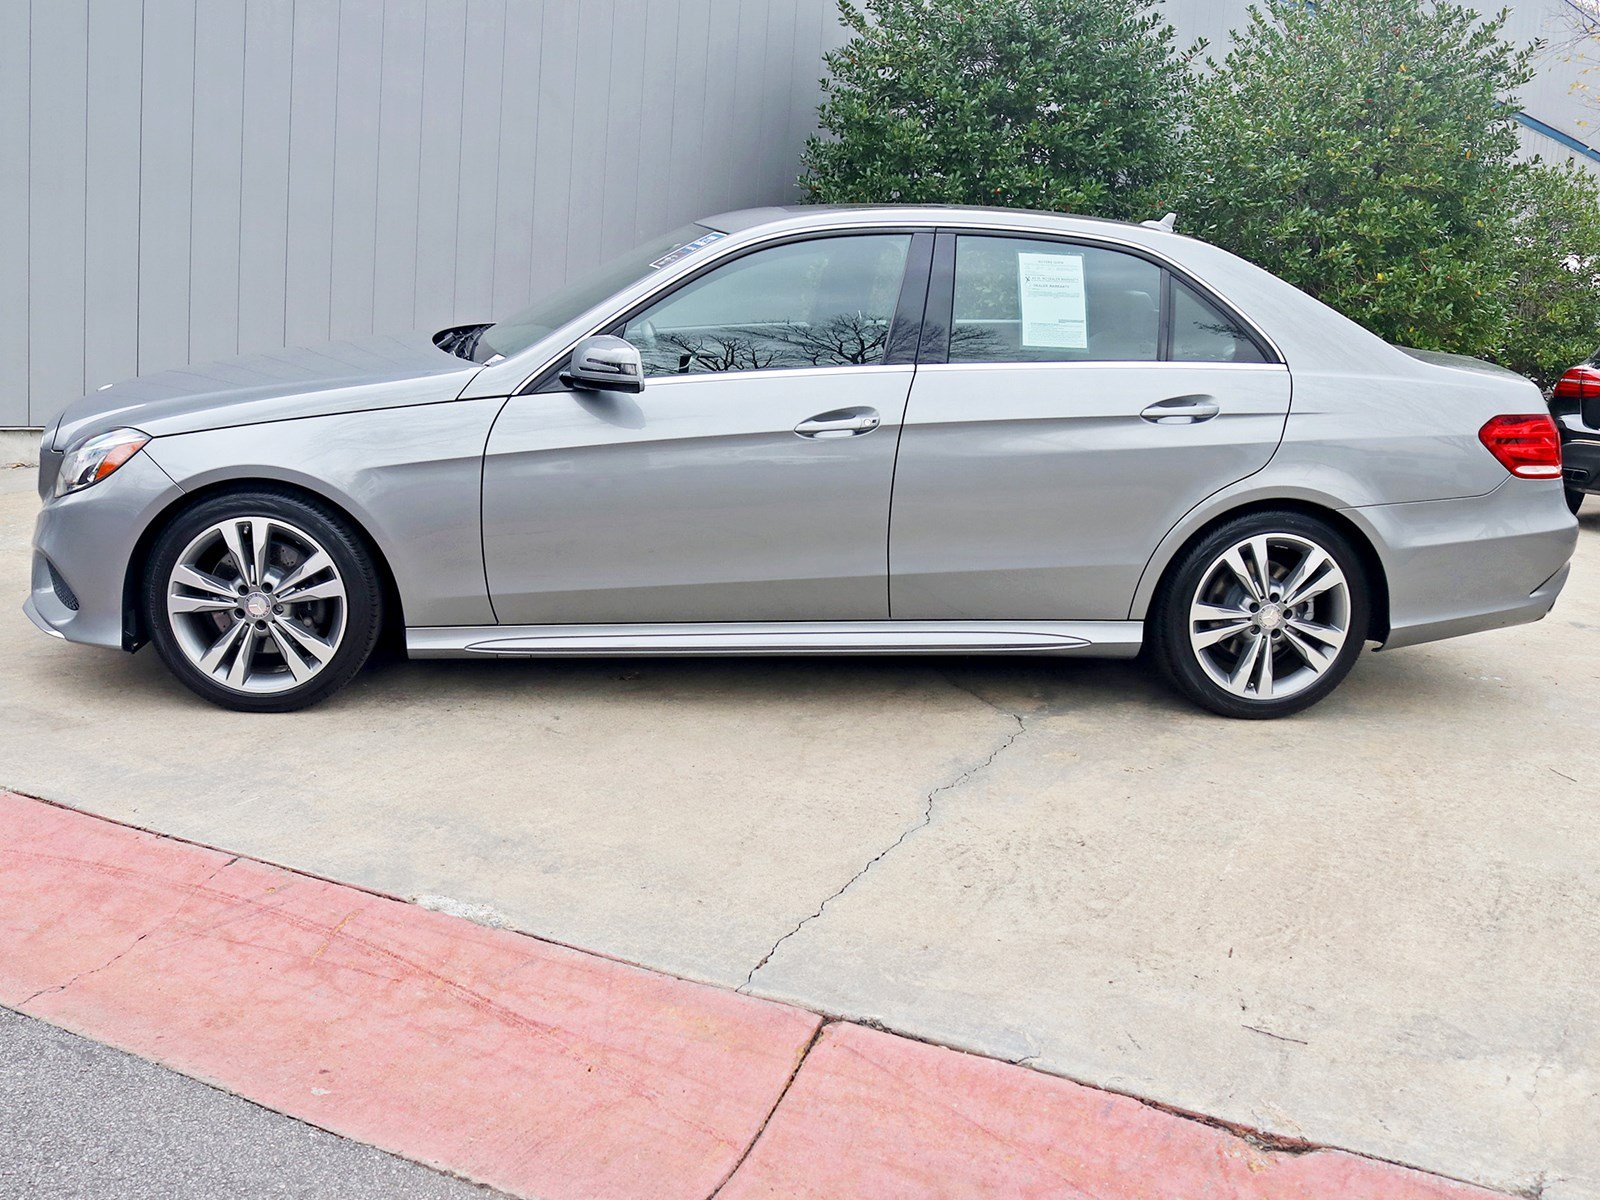 Mercedes benz and used car dealer atlanta rbm of atlanta for Rbm mercedes benz